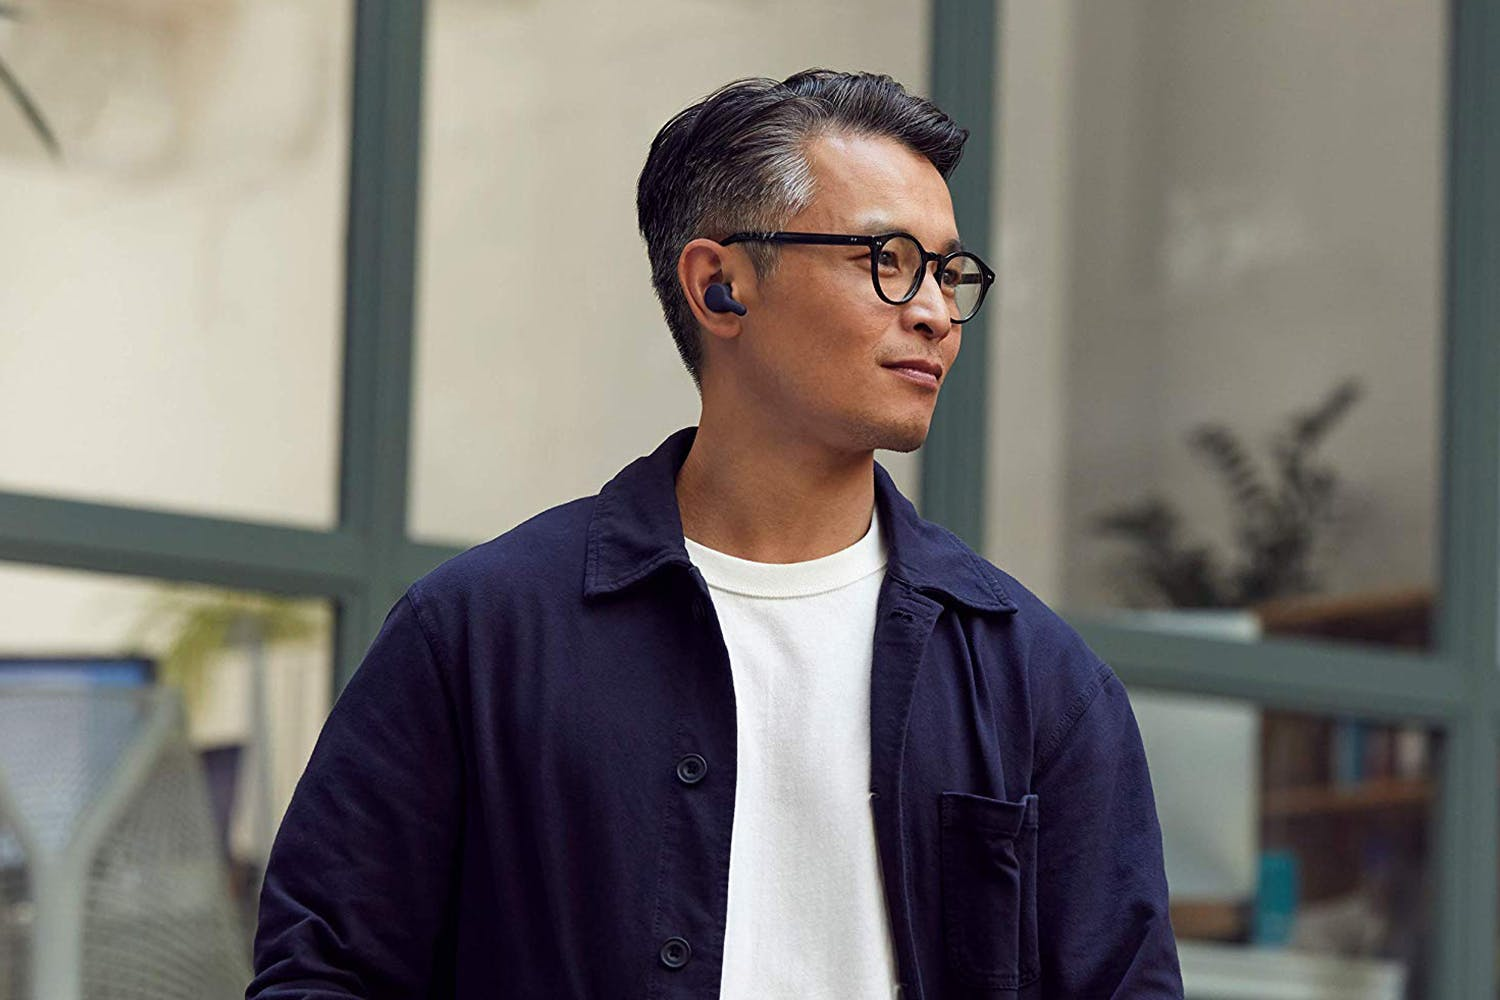 RHA TrueConnect Wireless Earbuds | Navy